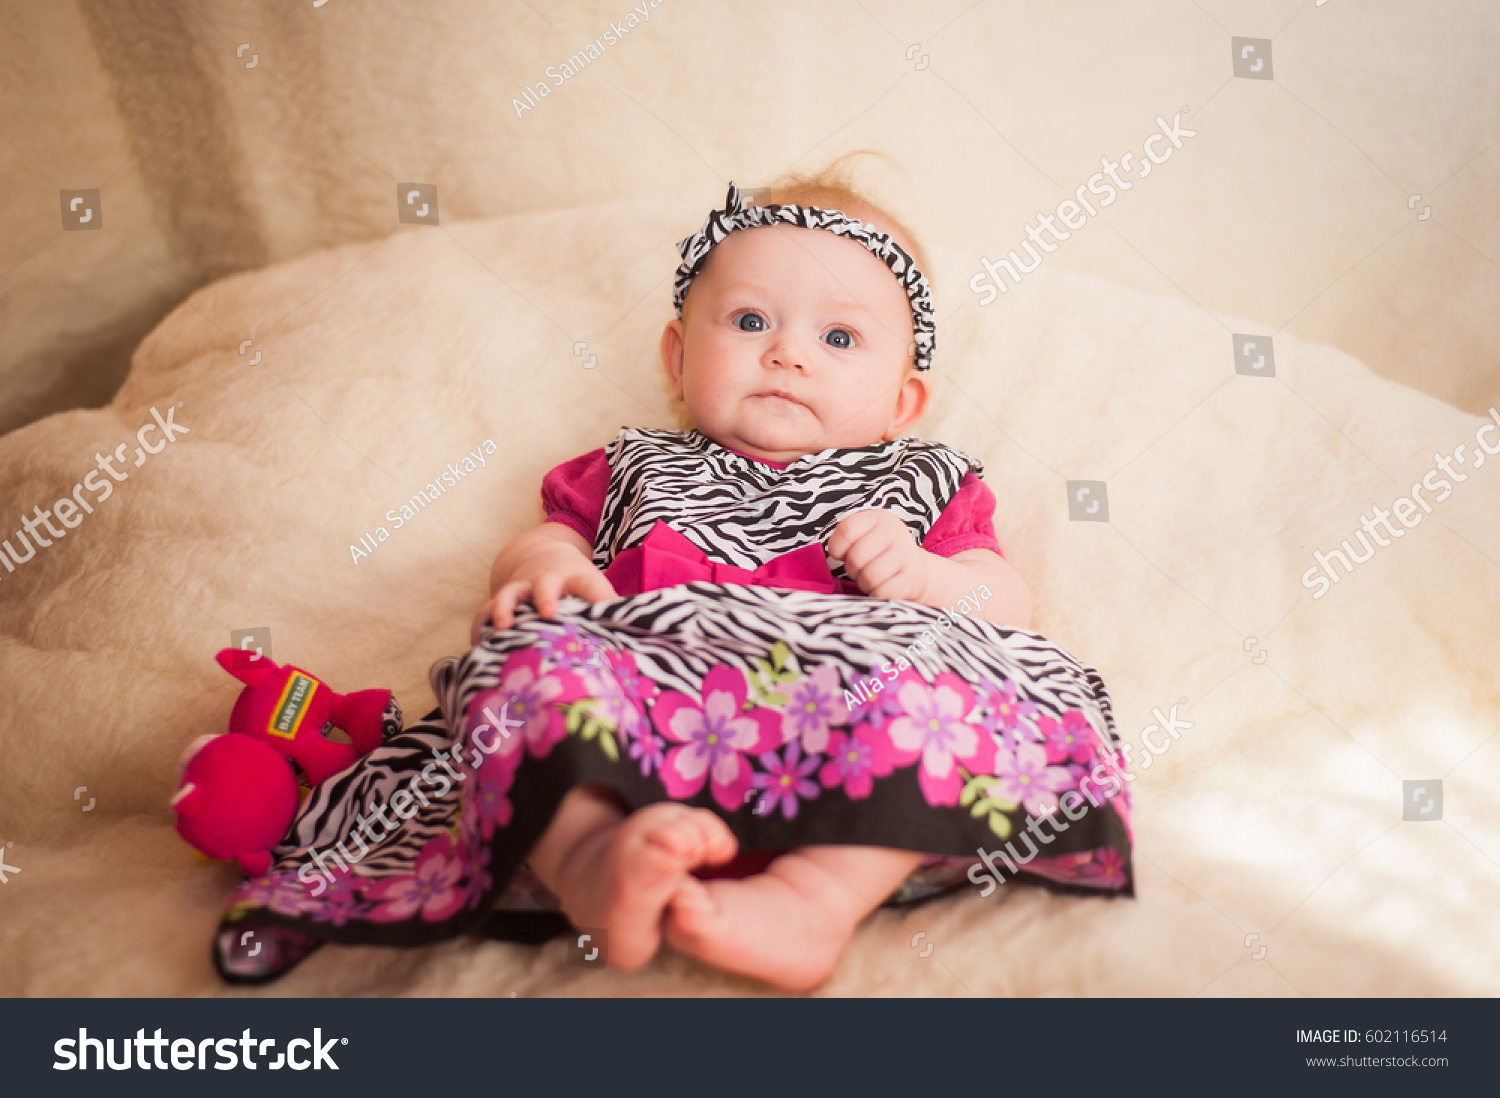 small baby girl photographed beautiful dress stock photo (edit now